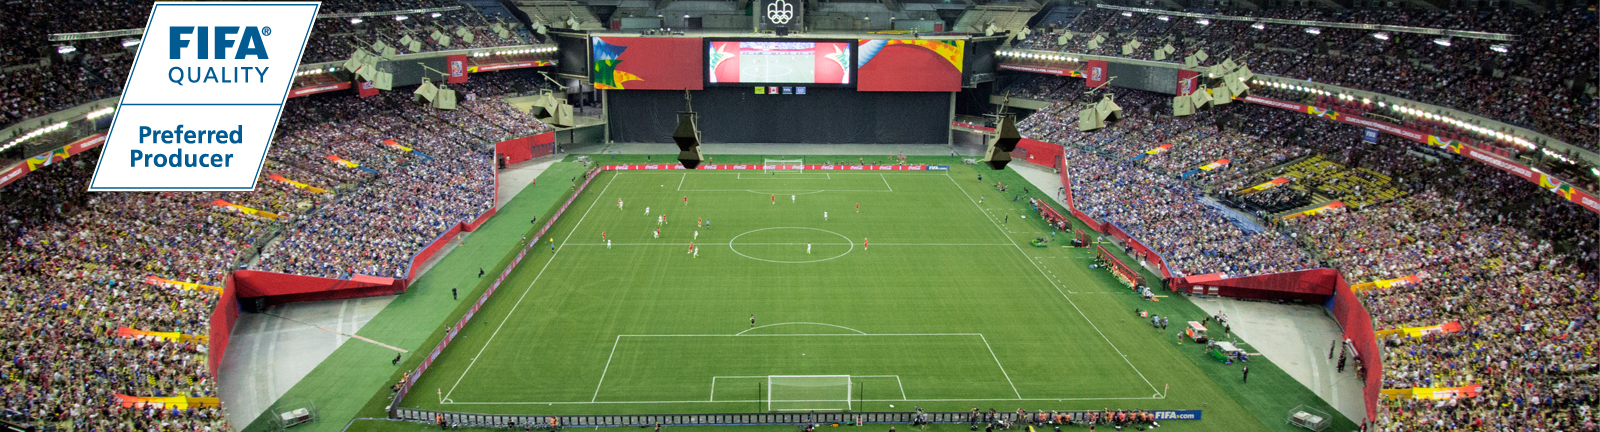 Xtreme Turf installed at Montreal Olympic Stadium for the Women's World Cup 2015